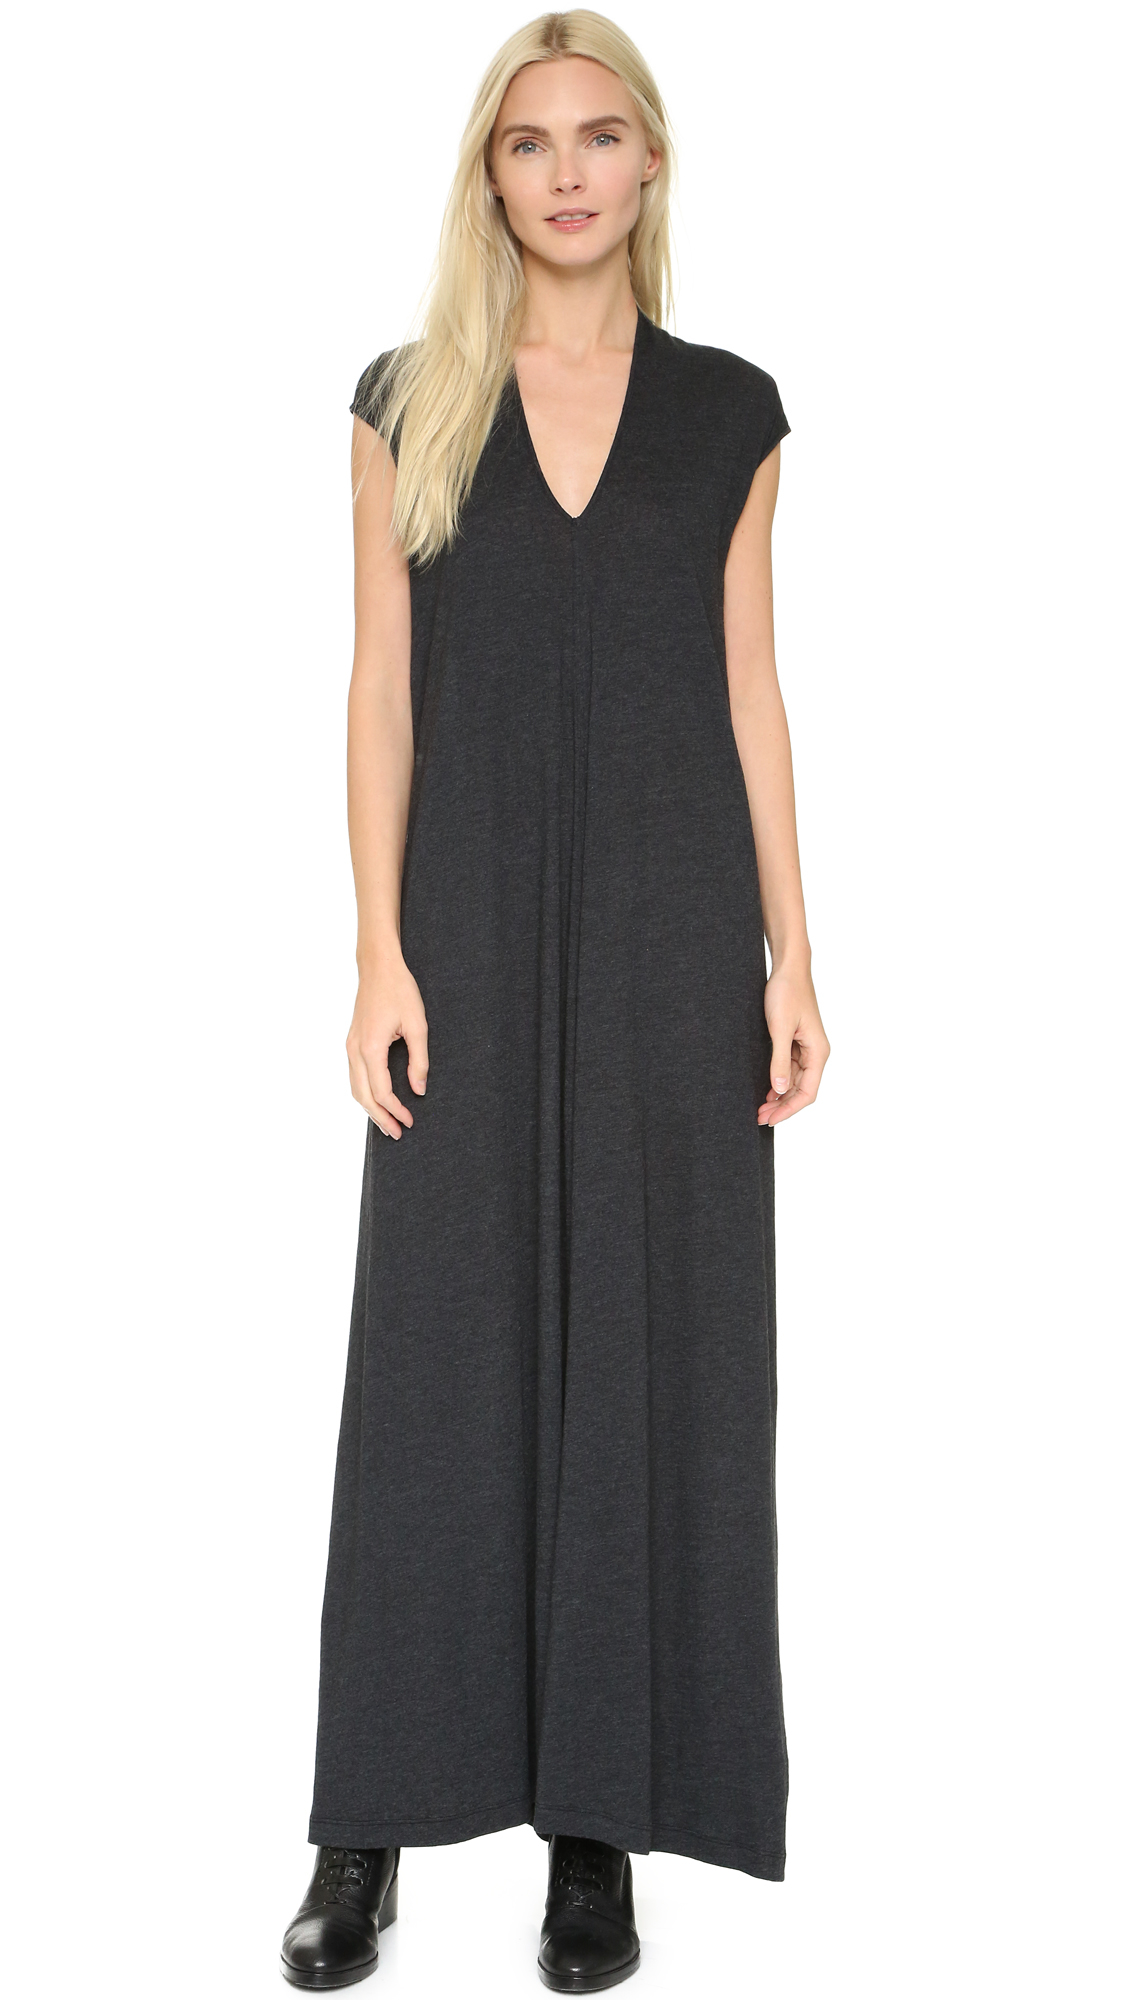 Dress down in a black maxi with ankle boots and accessories, or introduce a smart casual look in an elegant red maxi as a stylish alternative to a formal cocktail dress. Complete the look with classy jewellery and sandals.